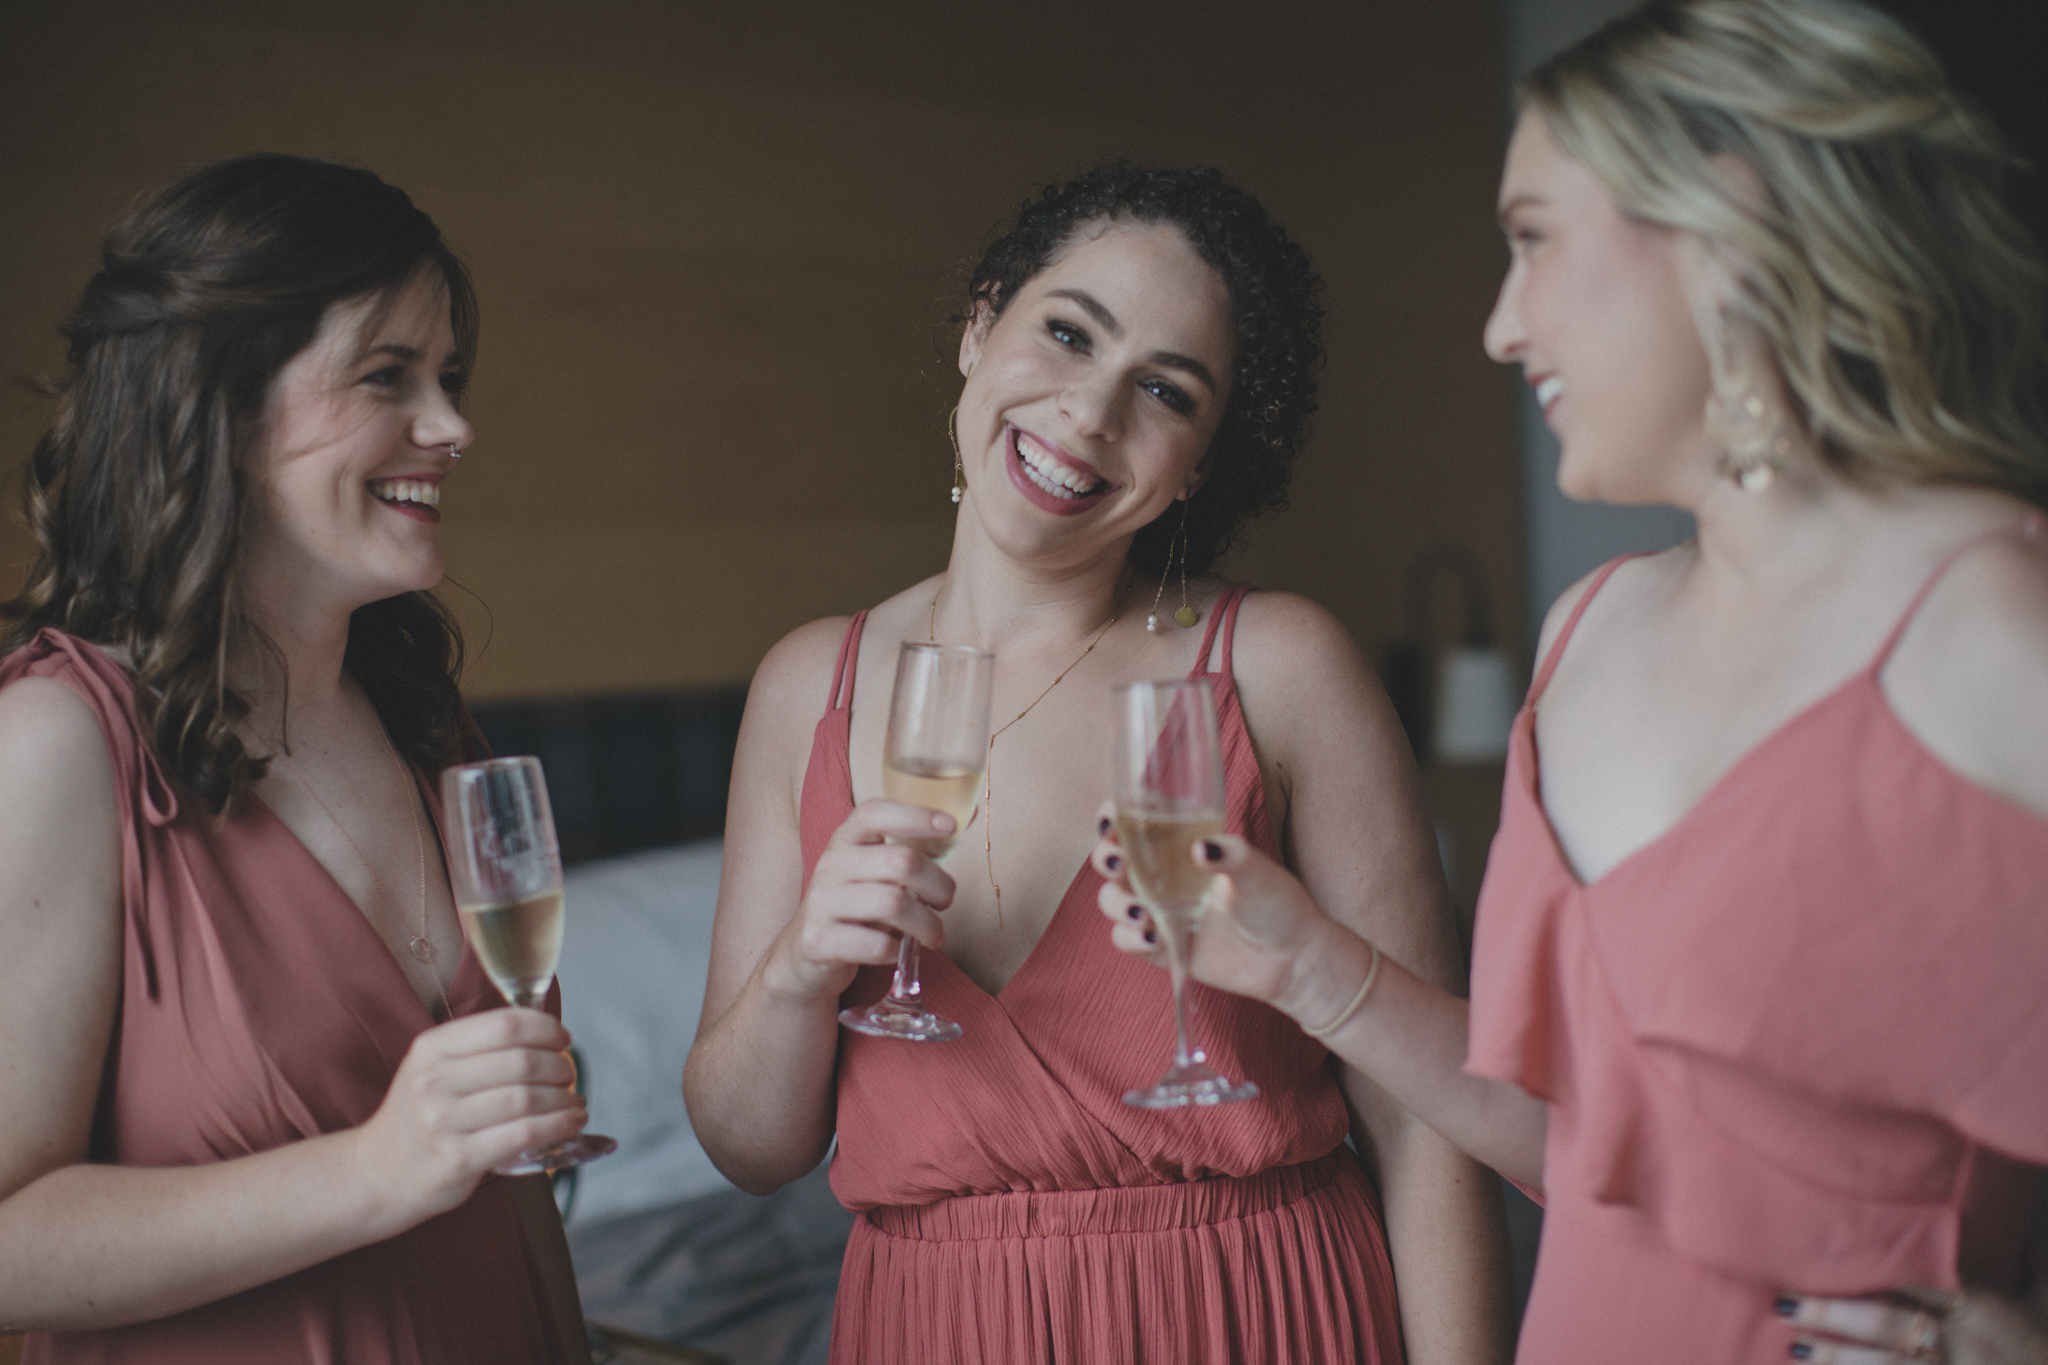 greatsmilebridesmaids